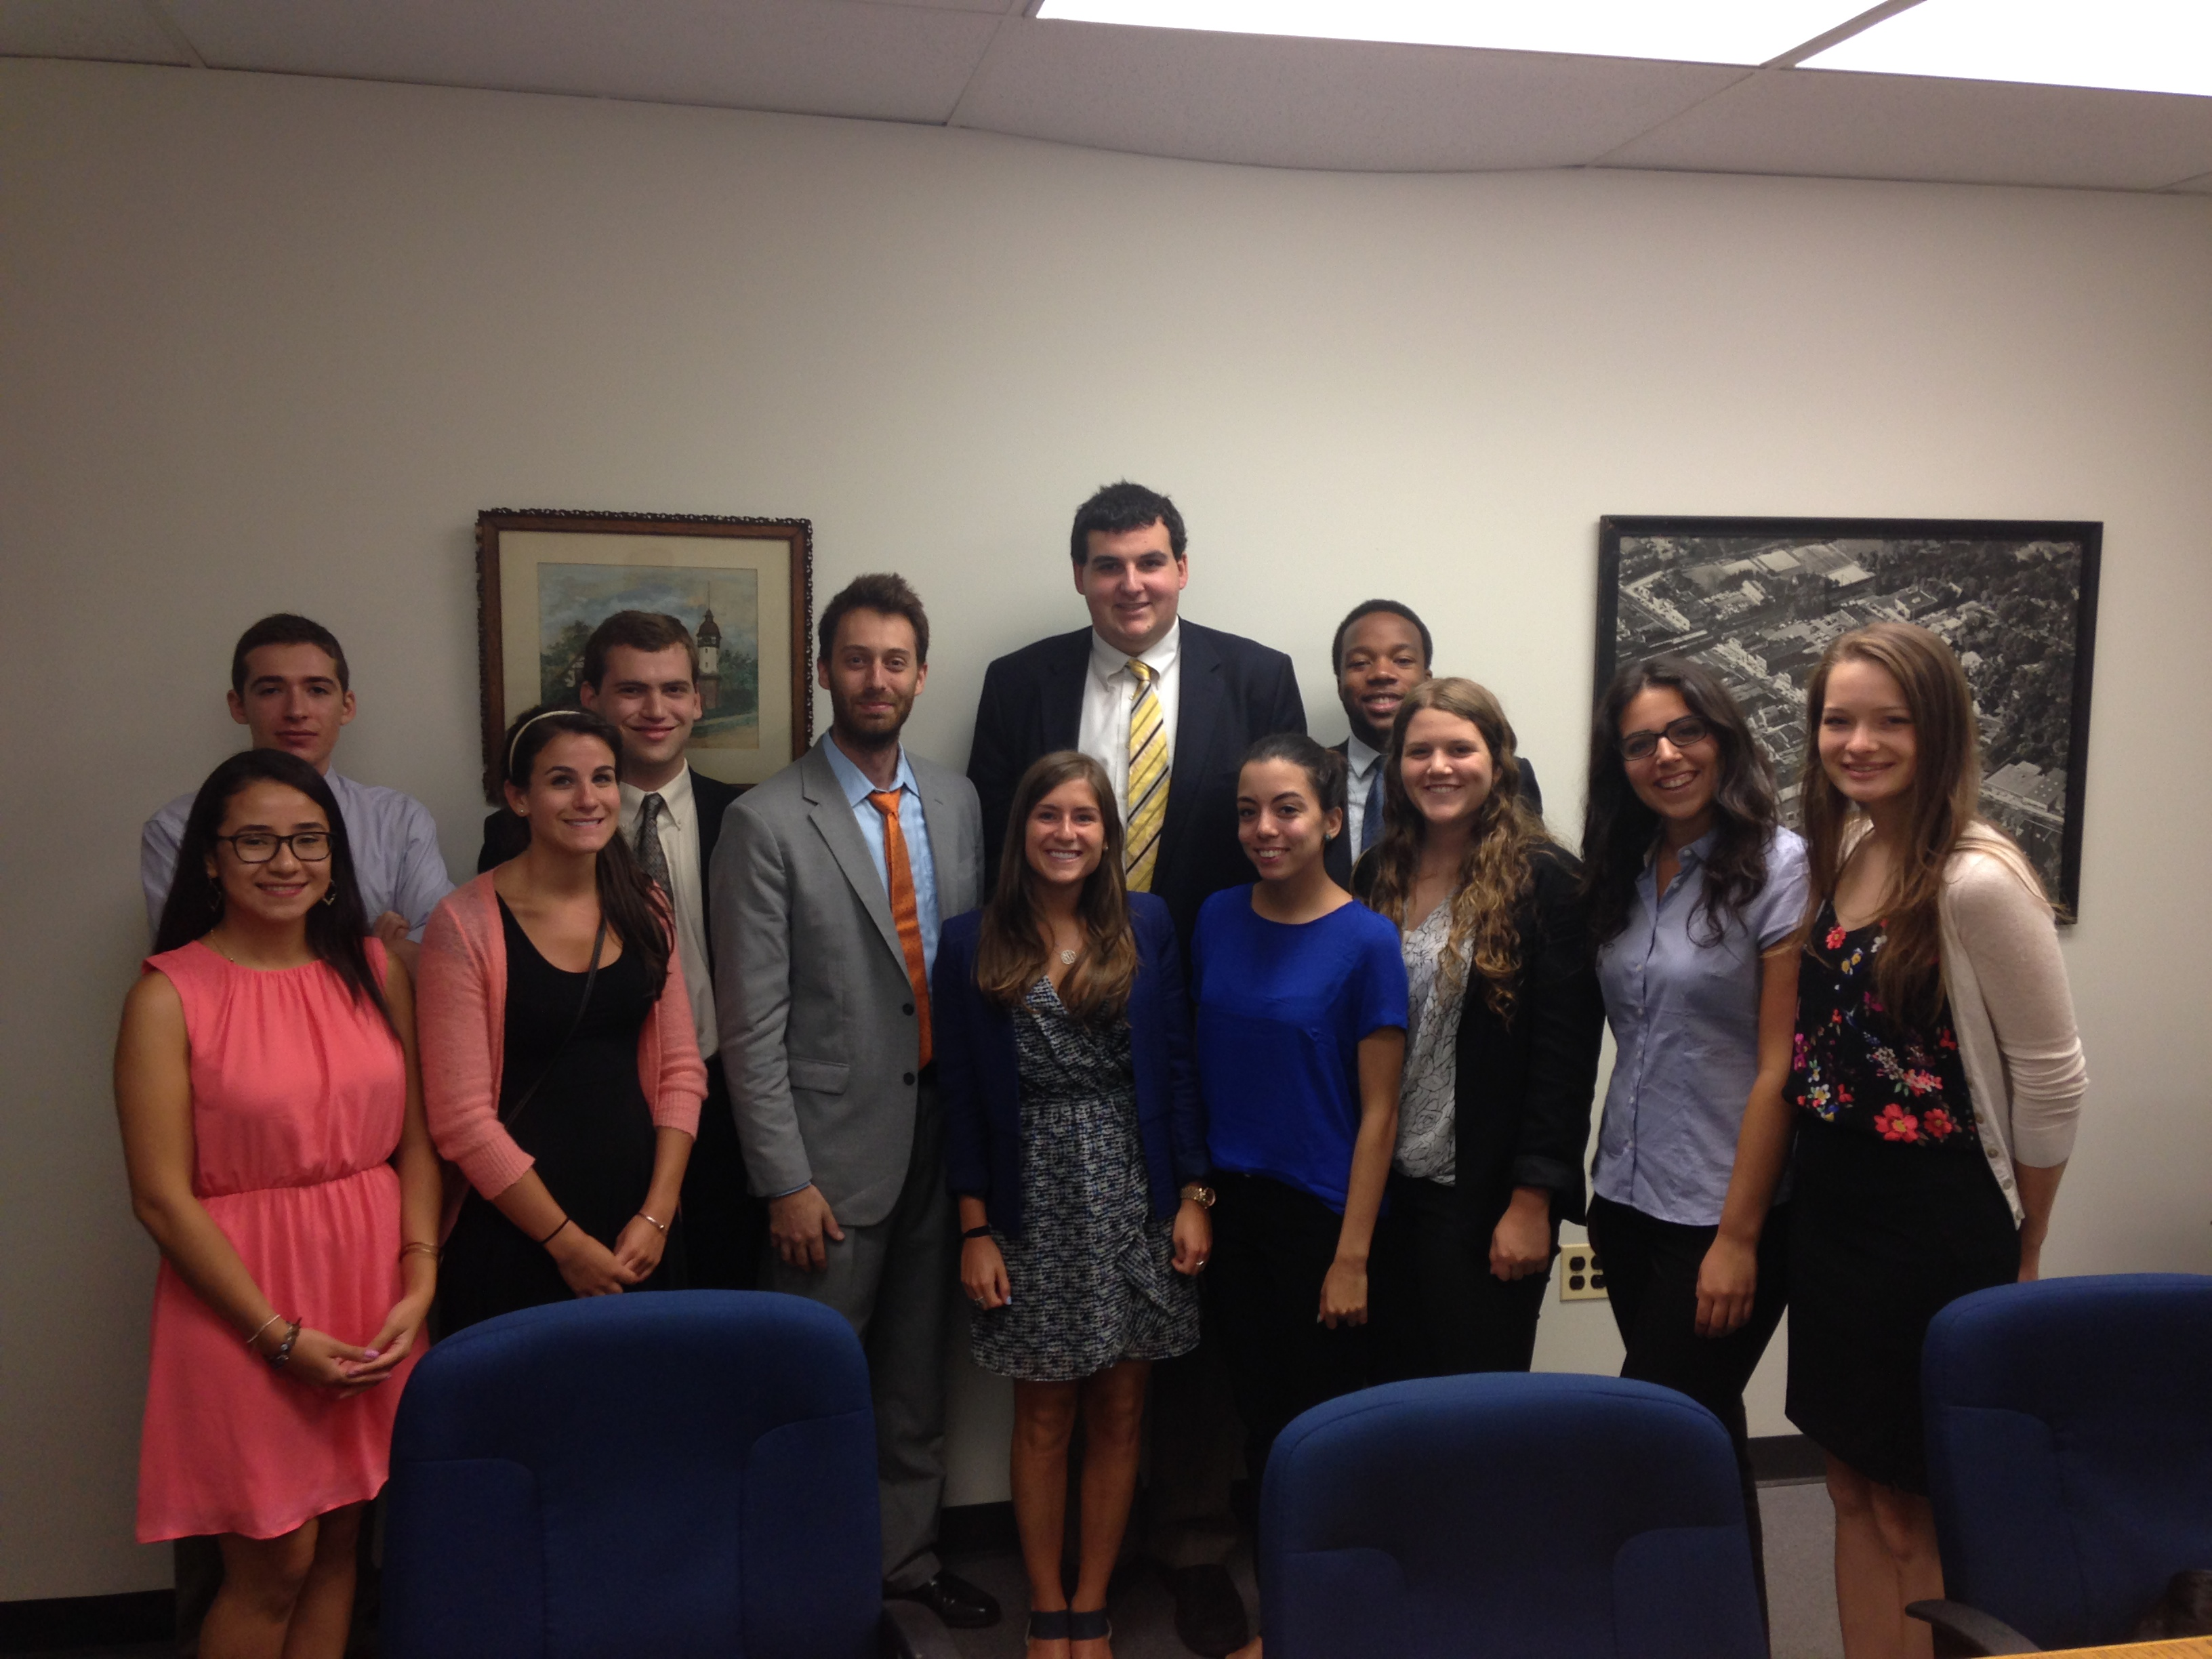 Alex Torpey with Senator Cory Booker interns